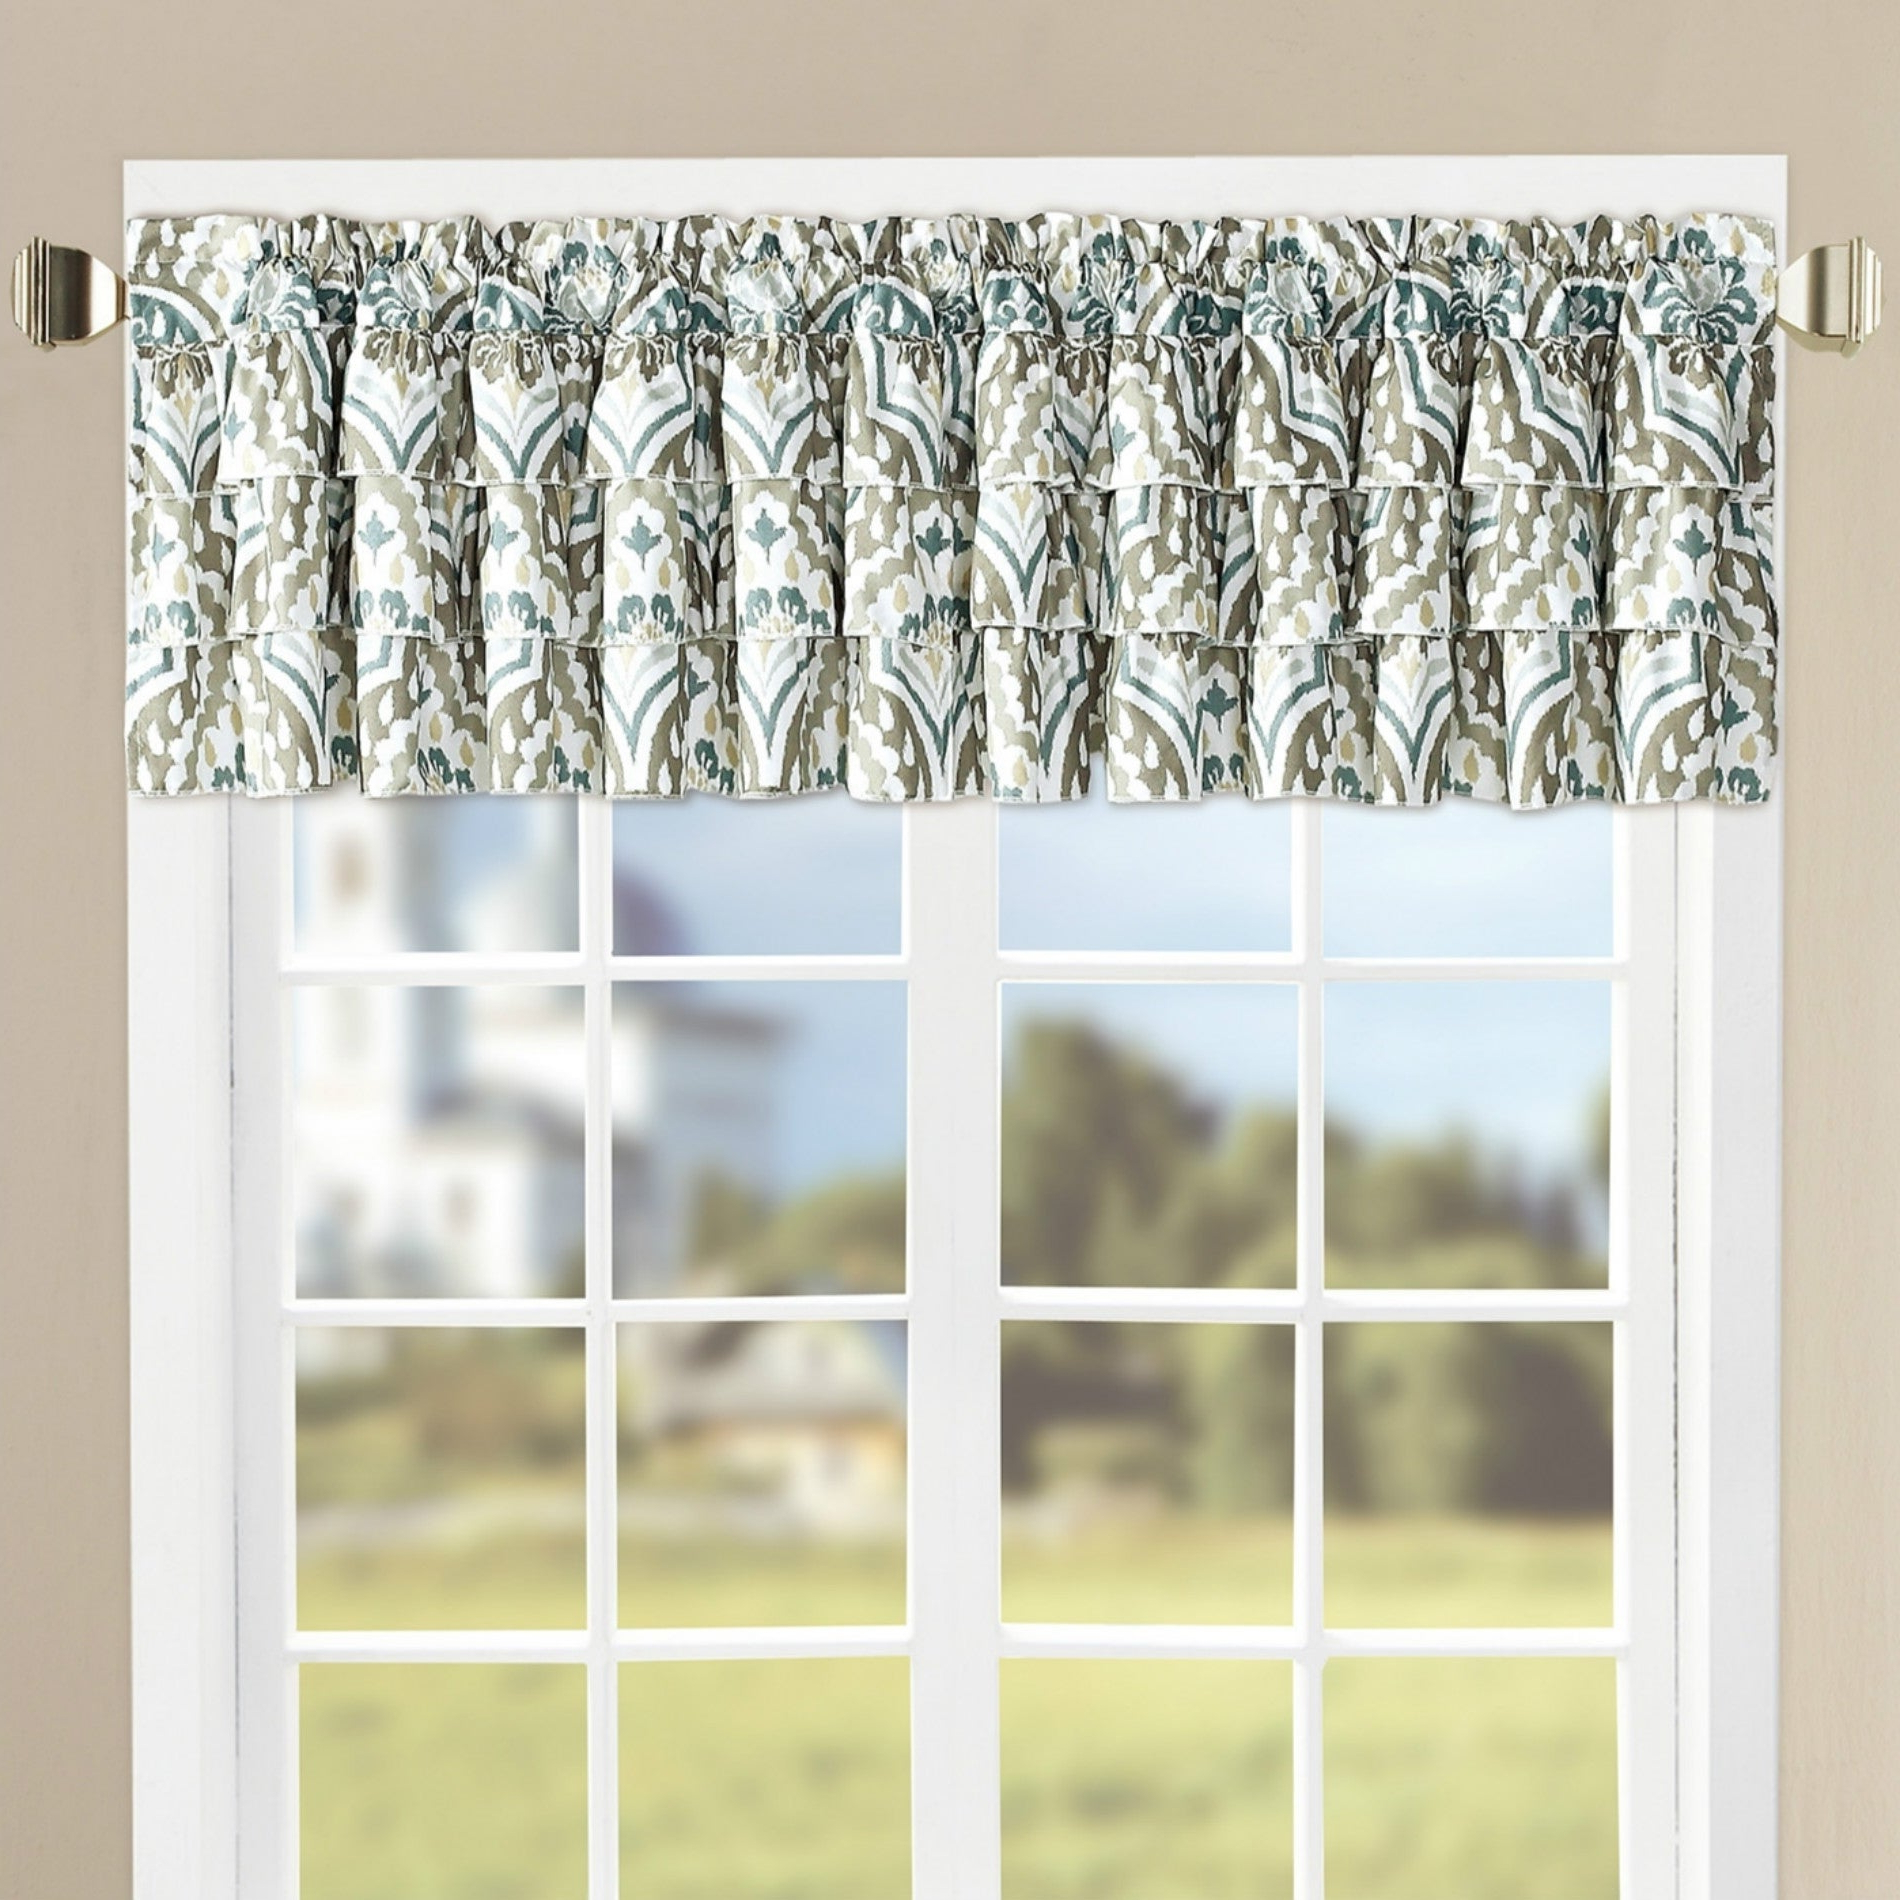 "Favorite Serenta Tivoli Ikat Microfiber Valance Set – 52"" X 20"" Inside Geometric Print Microfiber 3 Piece Kitchen Curtain Valance And Tiers Sets (View 12 of 20)"